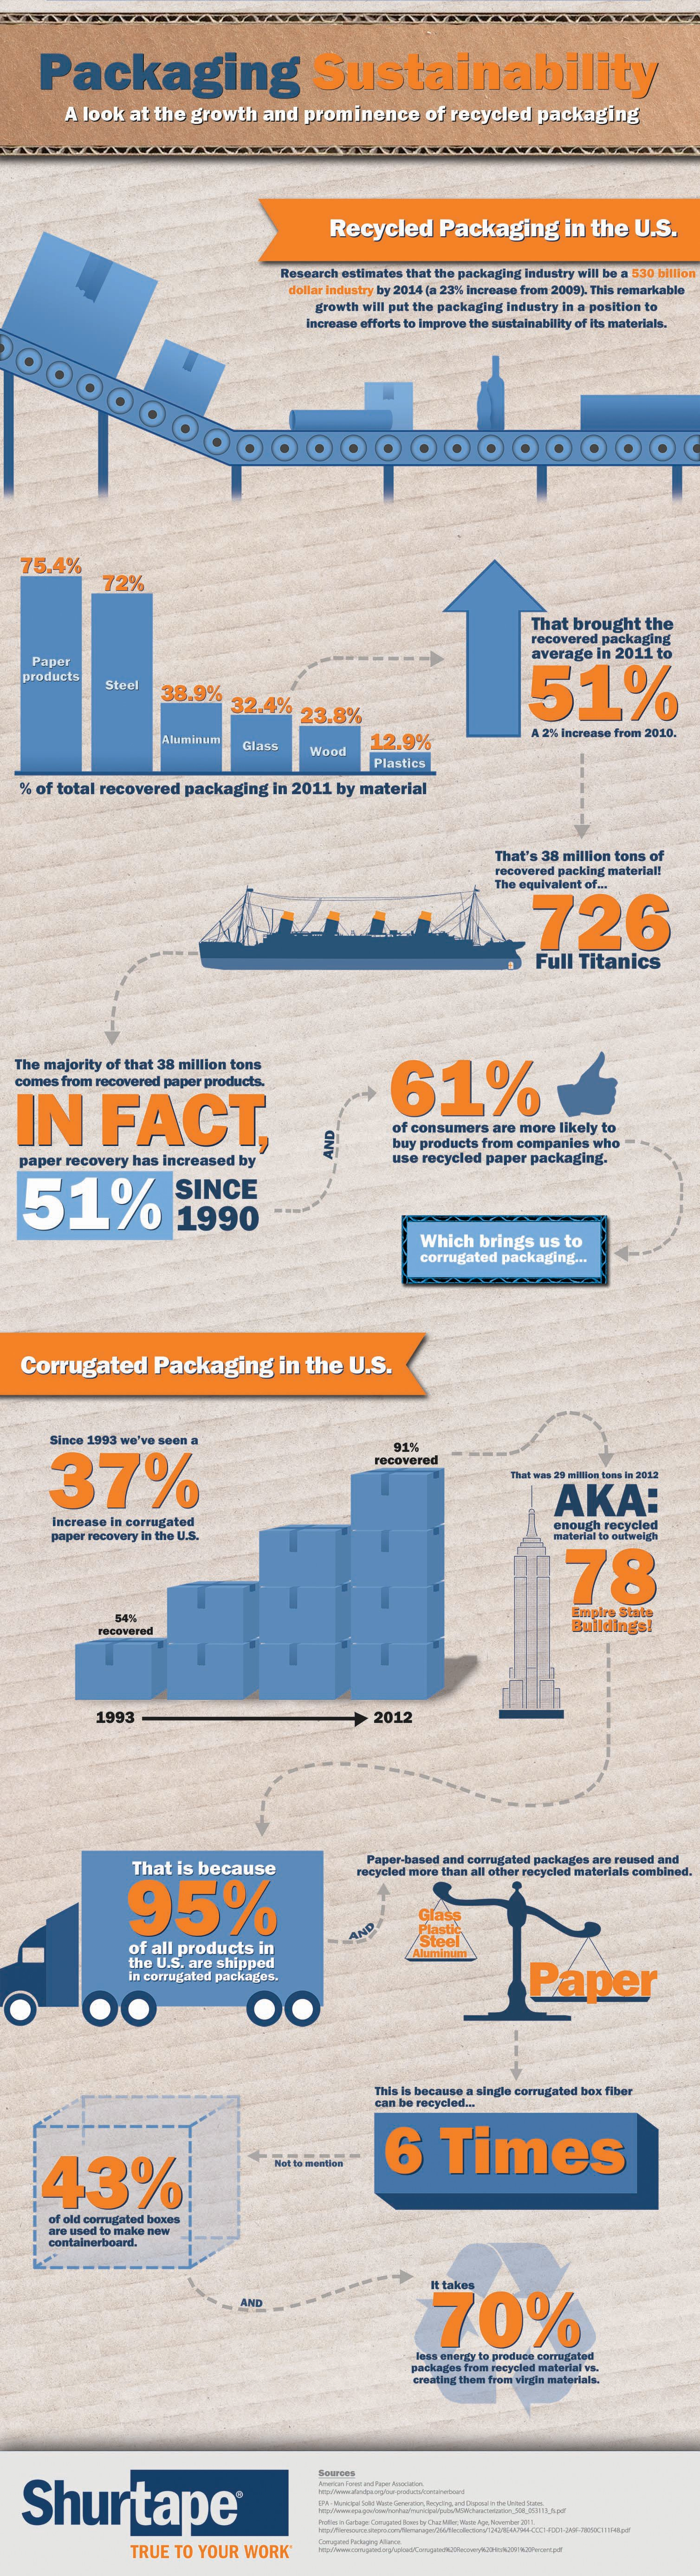 Packaging-Sustainability Infographic